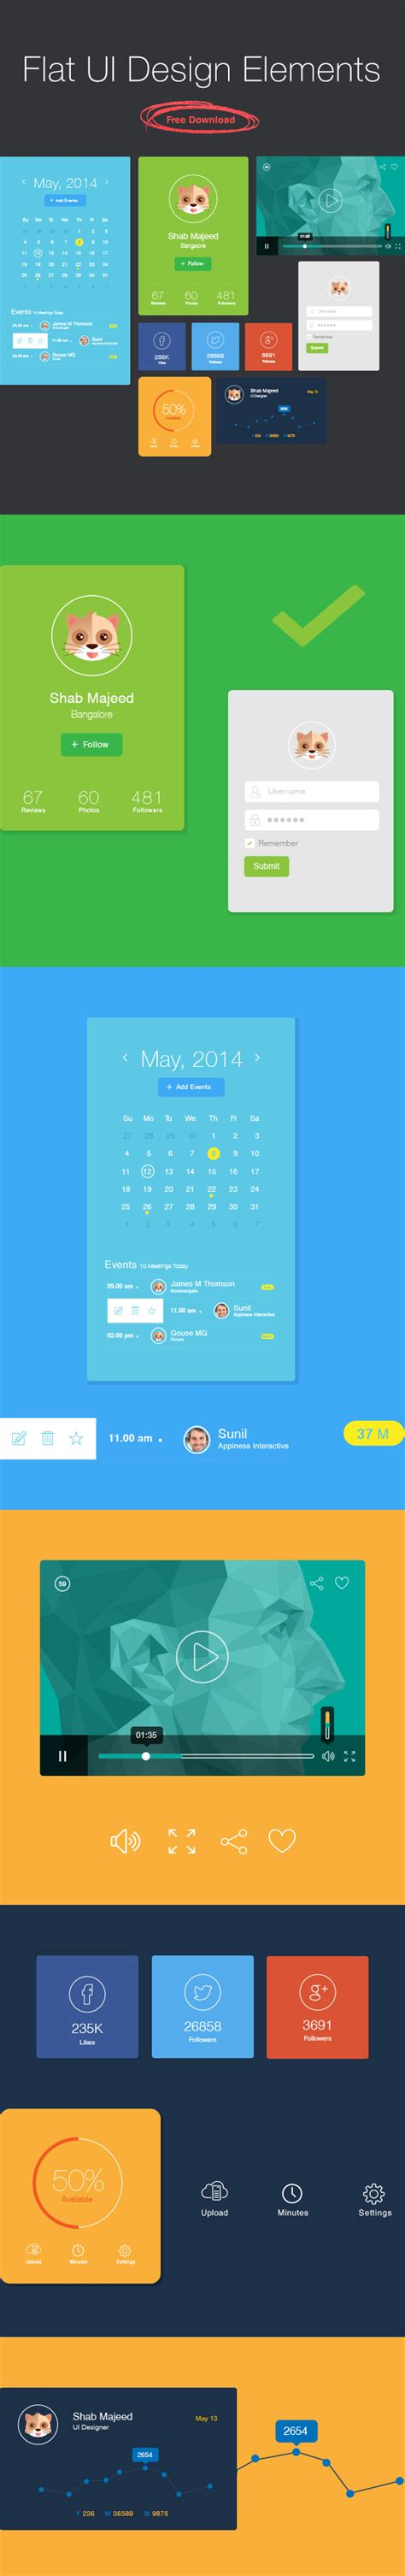 flat design ui elements flat ui design elements free download 2014